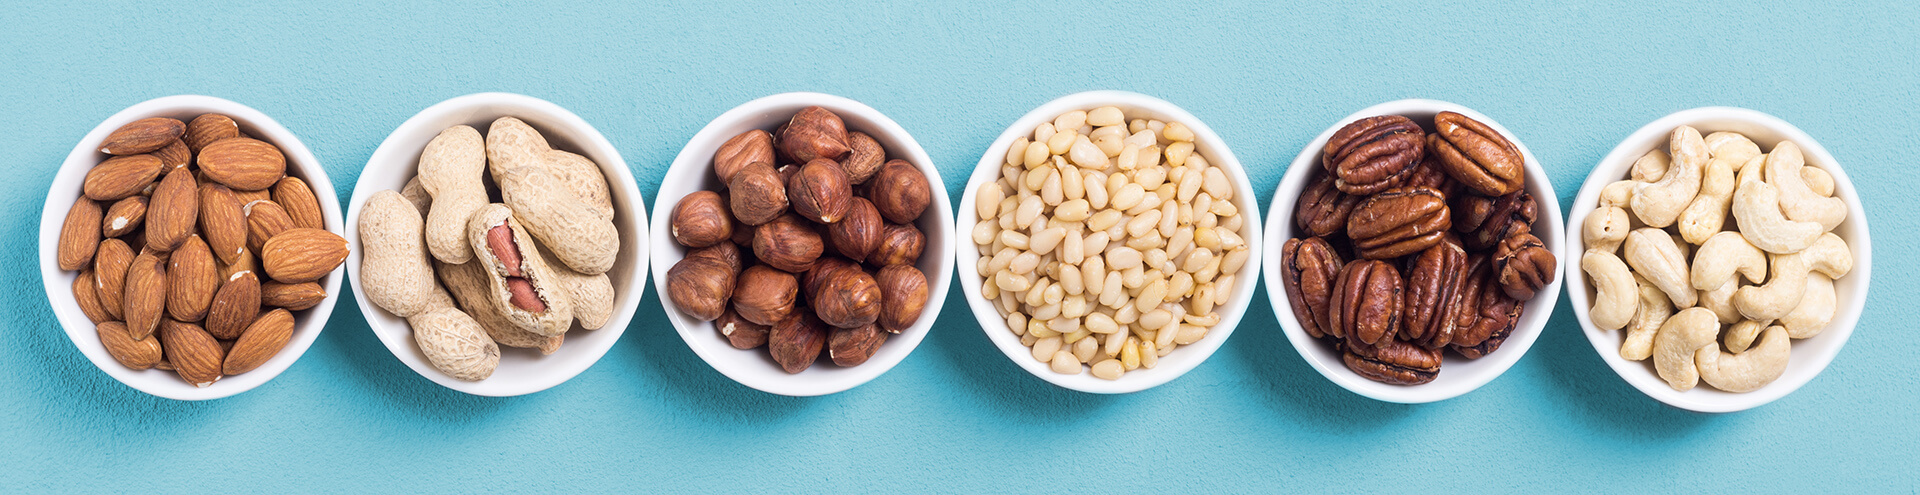 Mixed nuts in small white bowls against a blue background